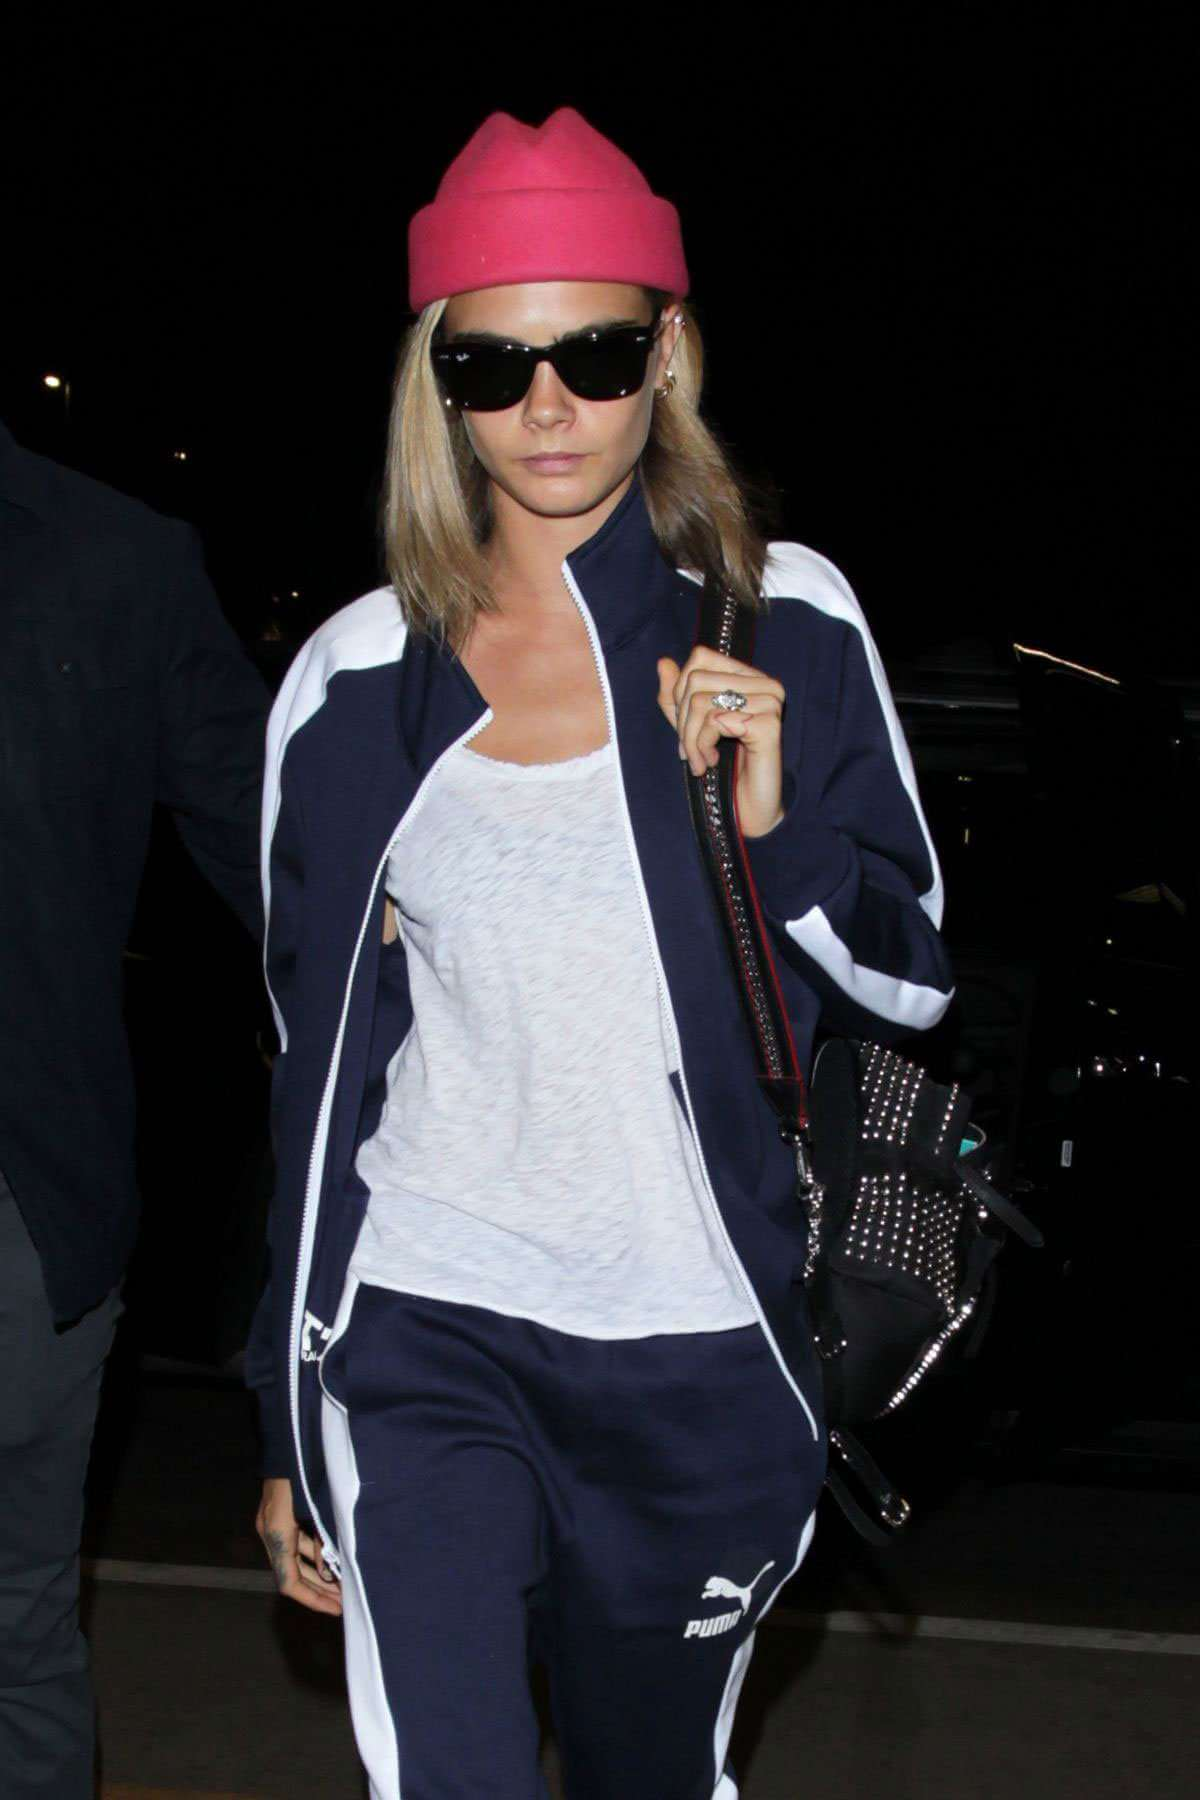 cara-delevingne-arriving-lax-airport-los-angeles-002